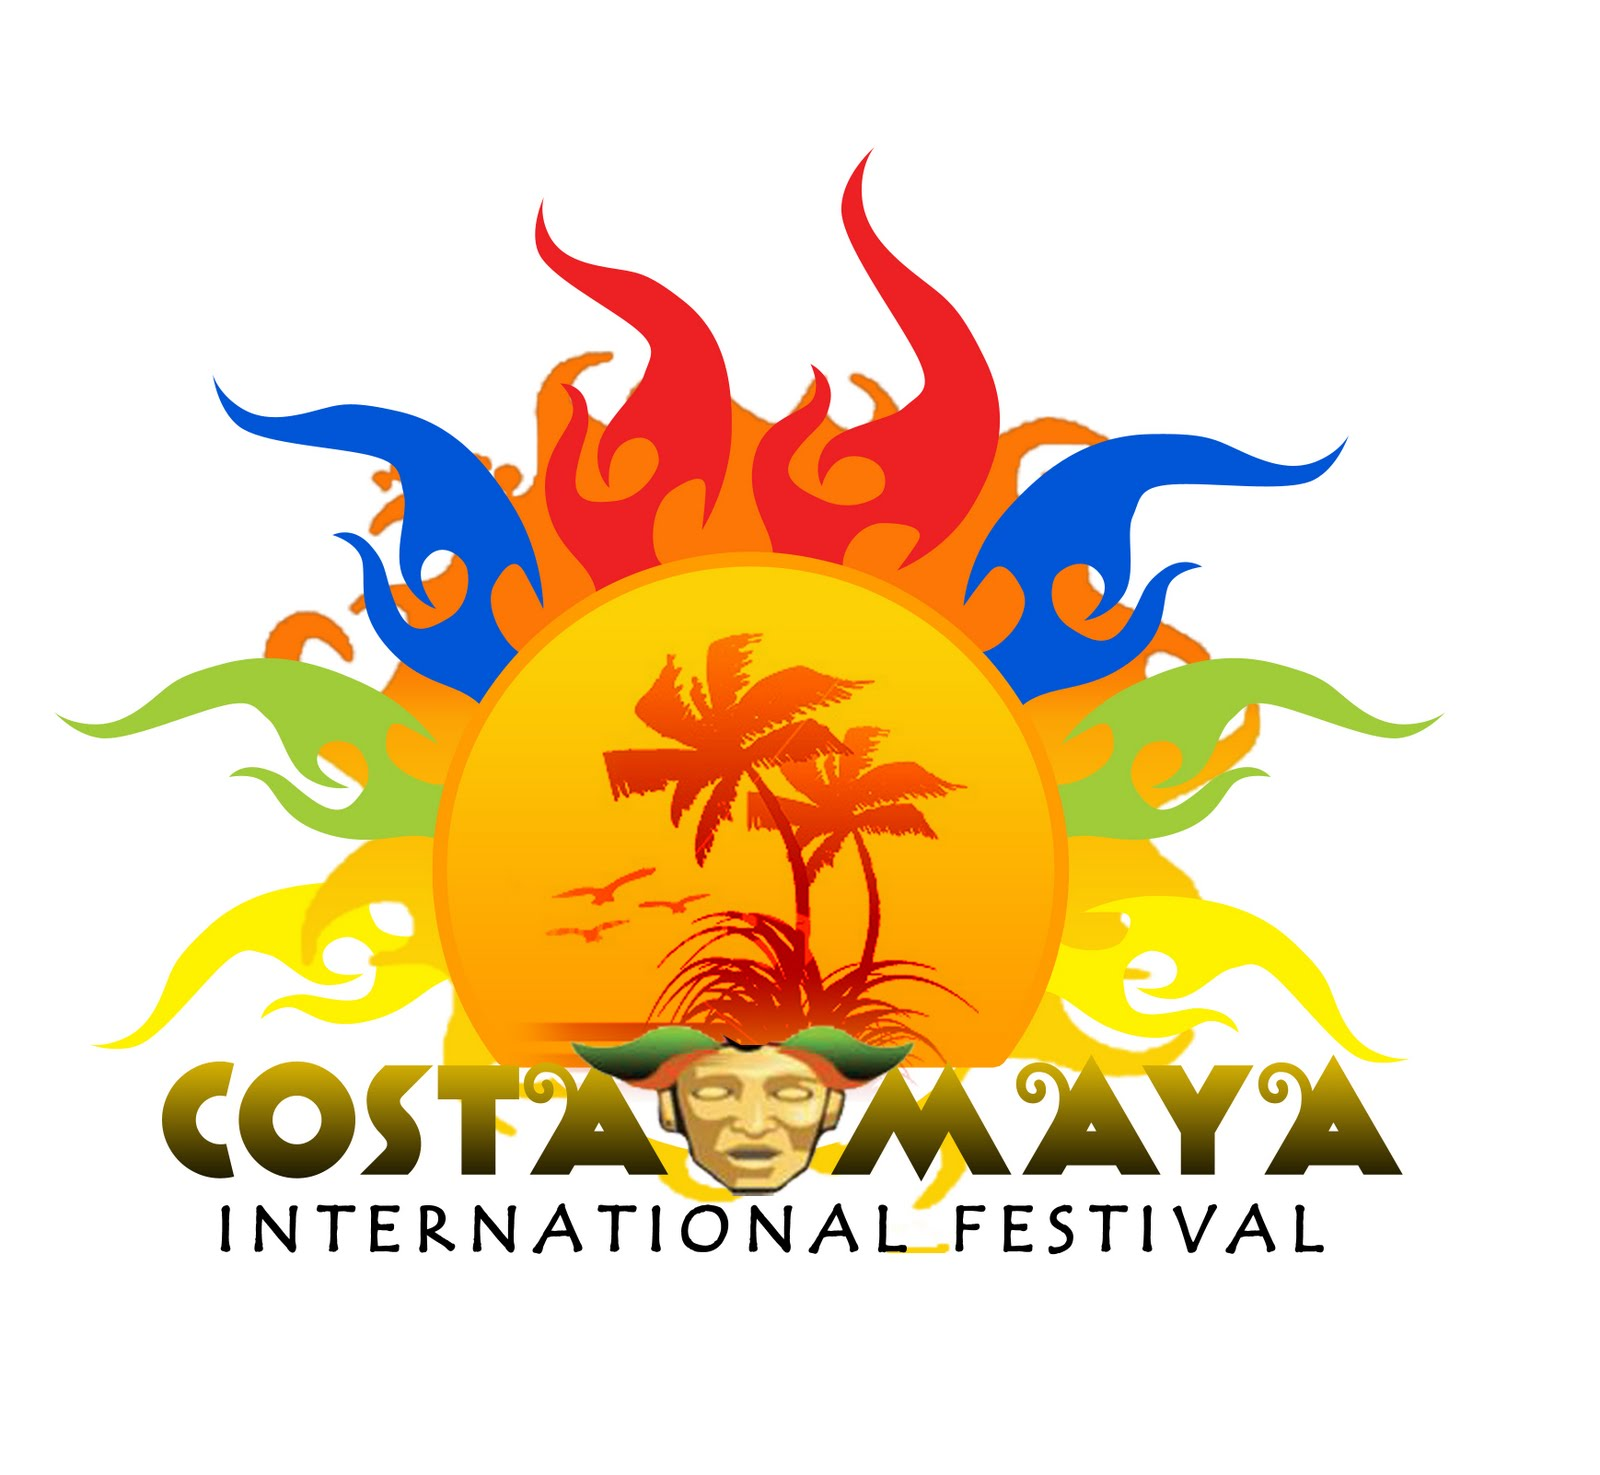 International-Costa-Maya-Festival-in-Belize